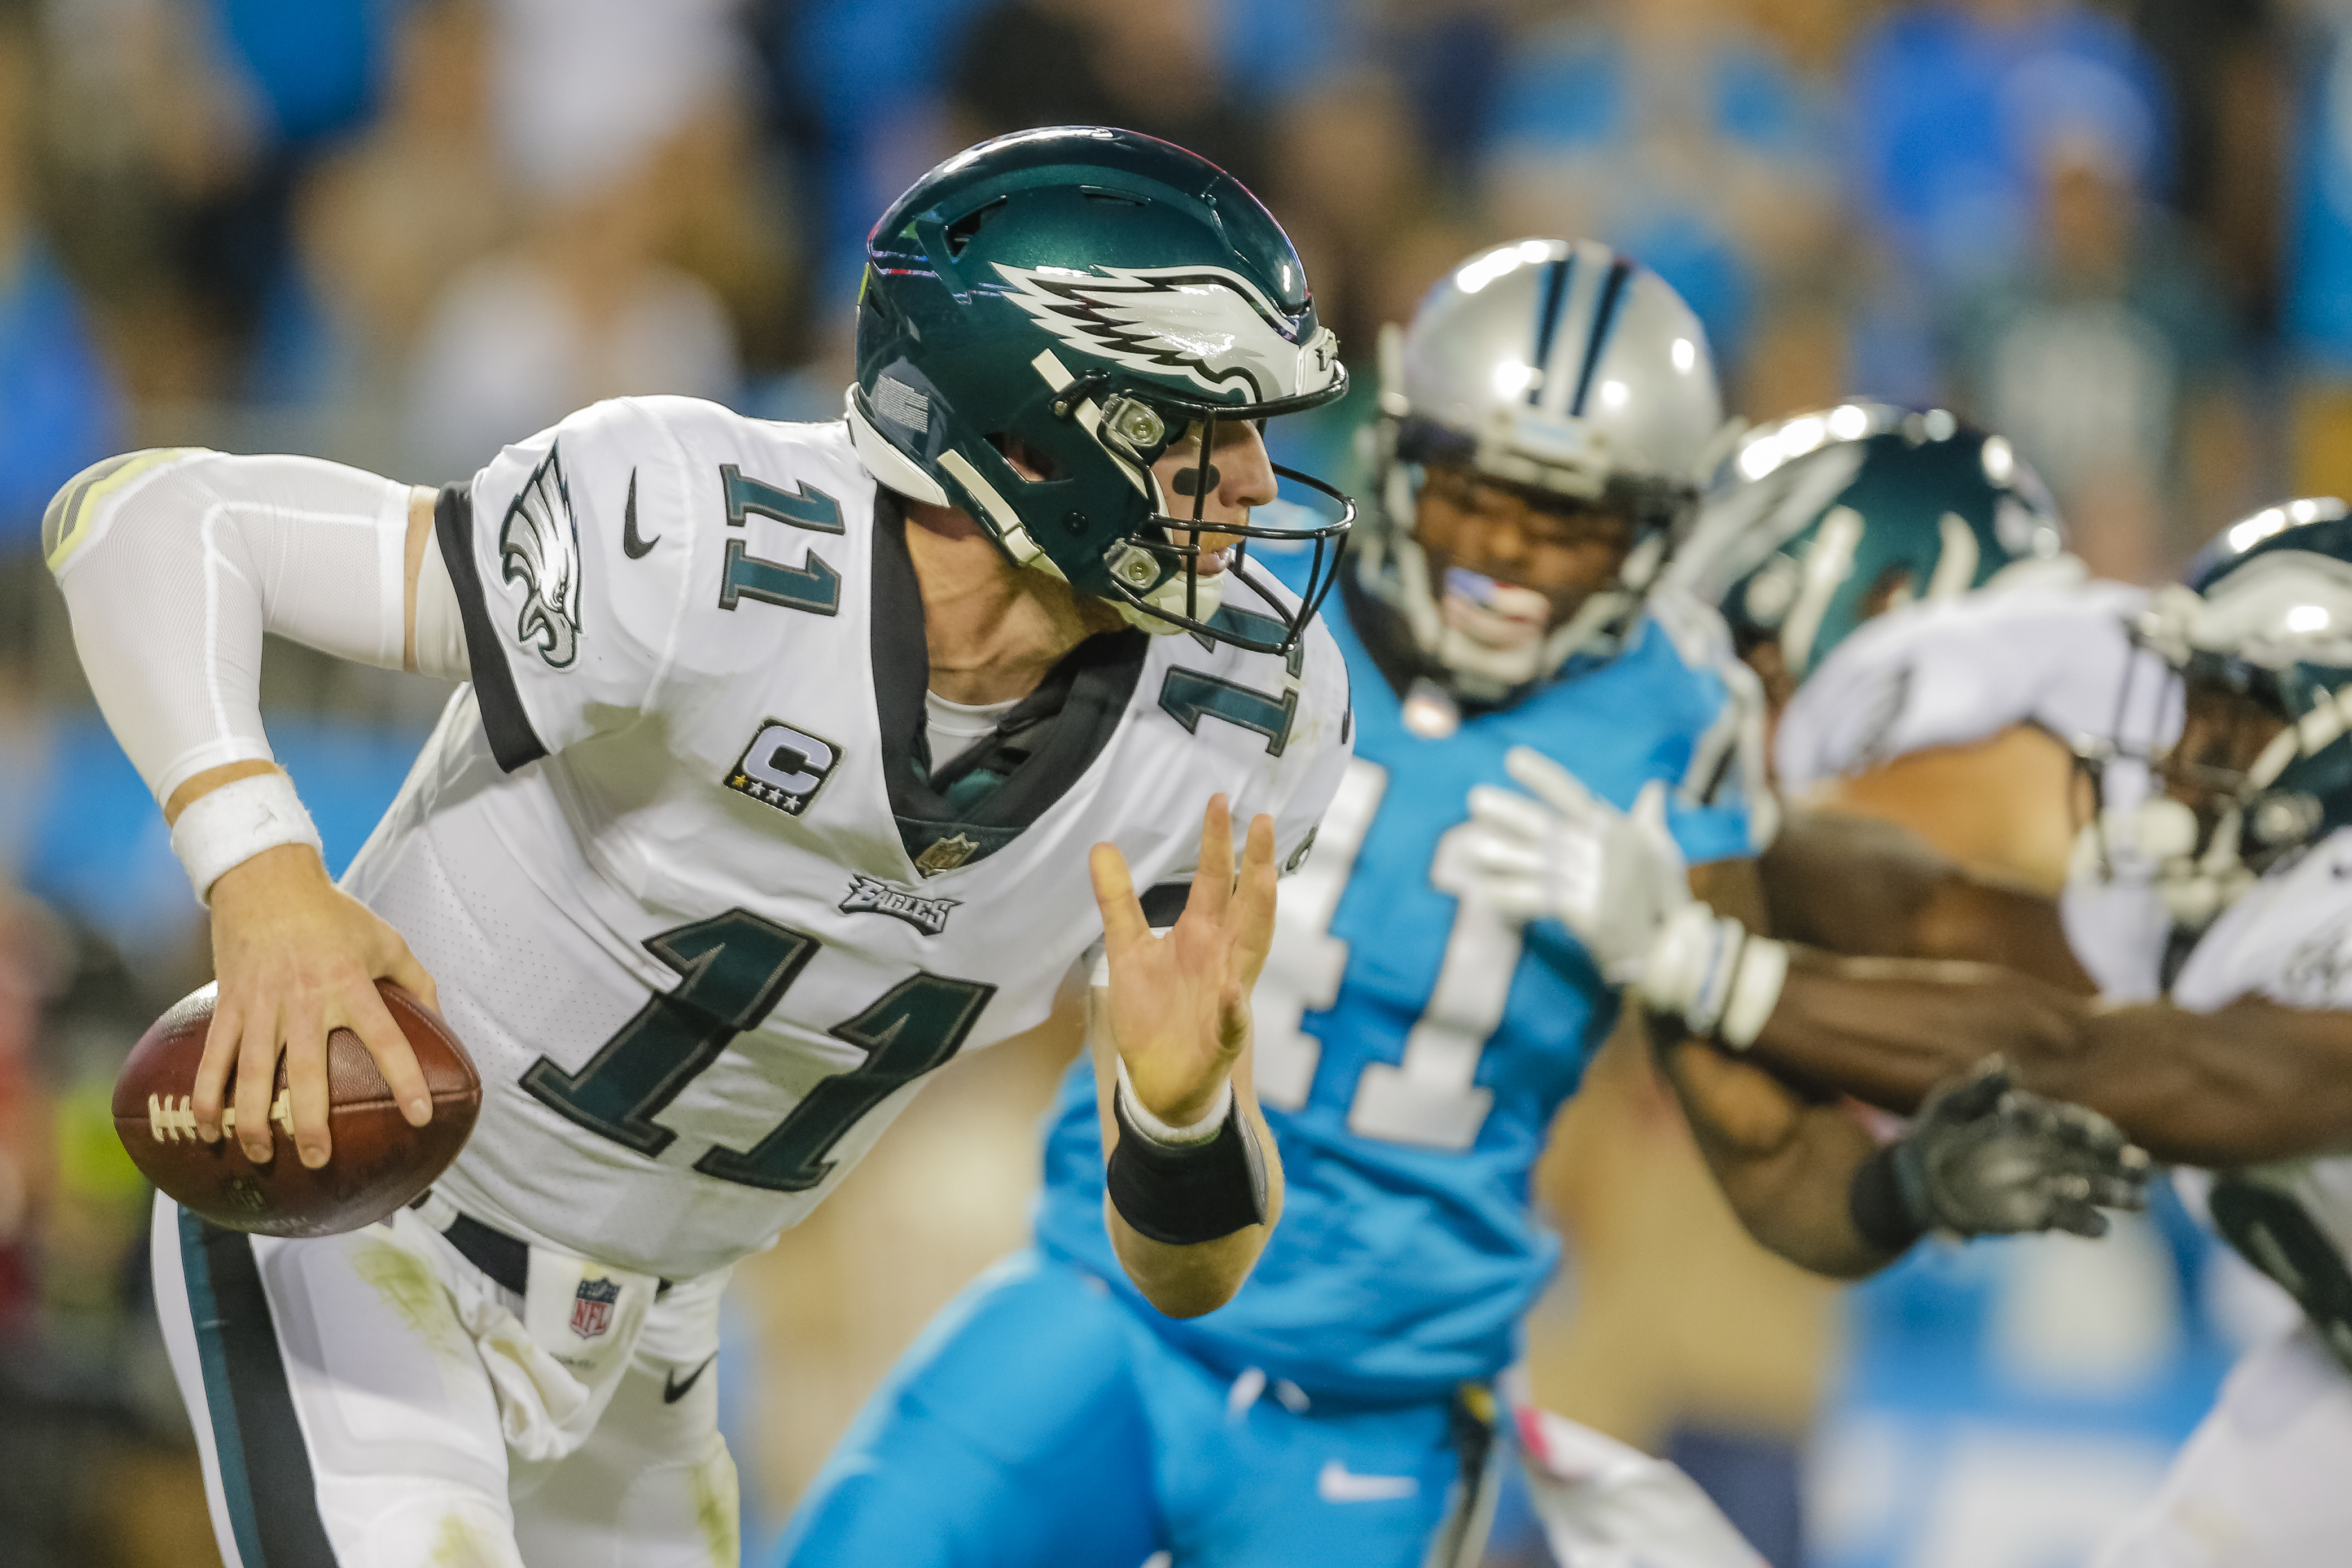 Philadelphia Eagles´ Carson Wentz (11) scrambles out of the pocket against the Carolina Panthers during the first half of an NFL football game in Charlotte, N.C., Thursday, Oct. 12, 2017. The Eagles won 28-23. (AP Photo/Bob Leverone)